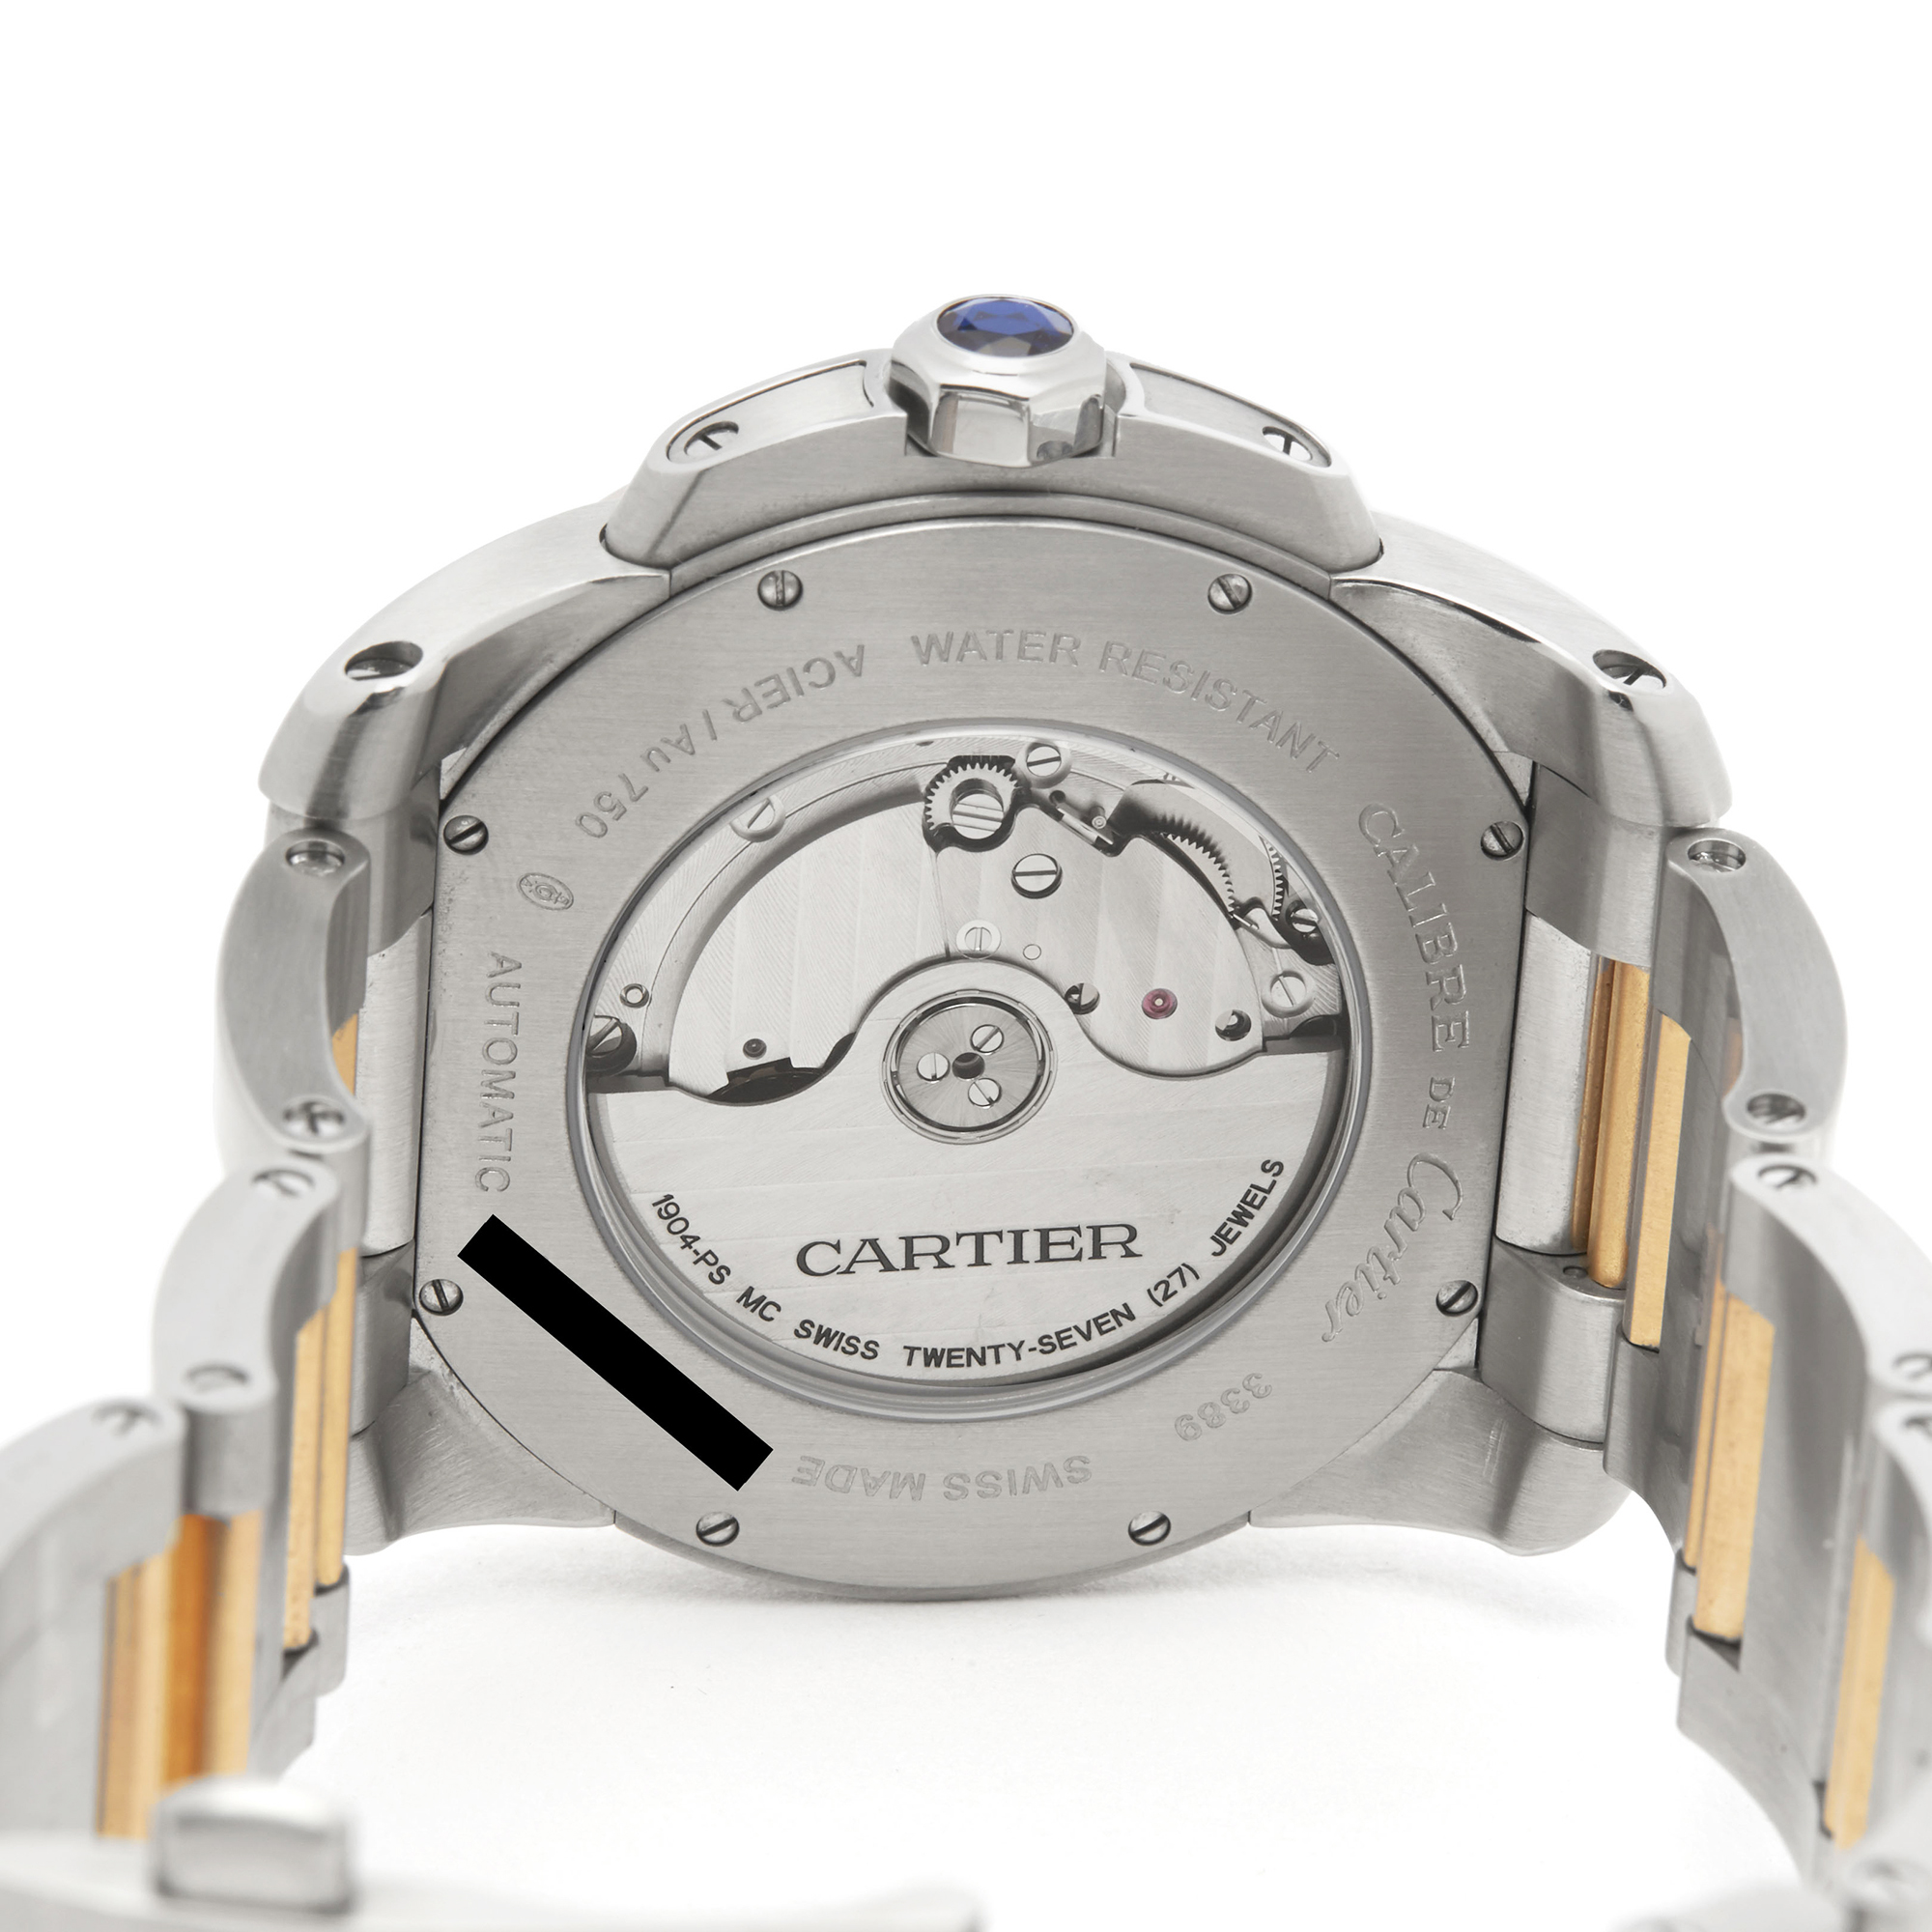 Cartier Calibre W7100036 or 3389 Men Stainless Steel & Rose Gold Watch - Image 4 of 8